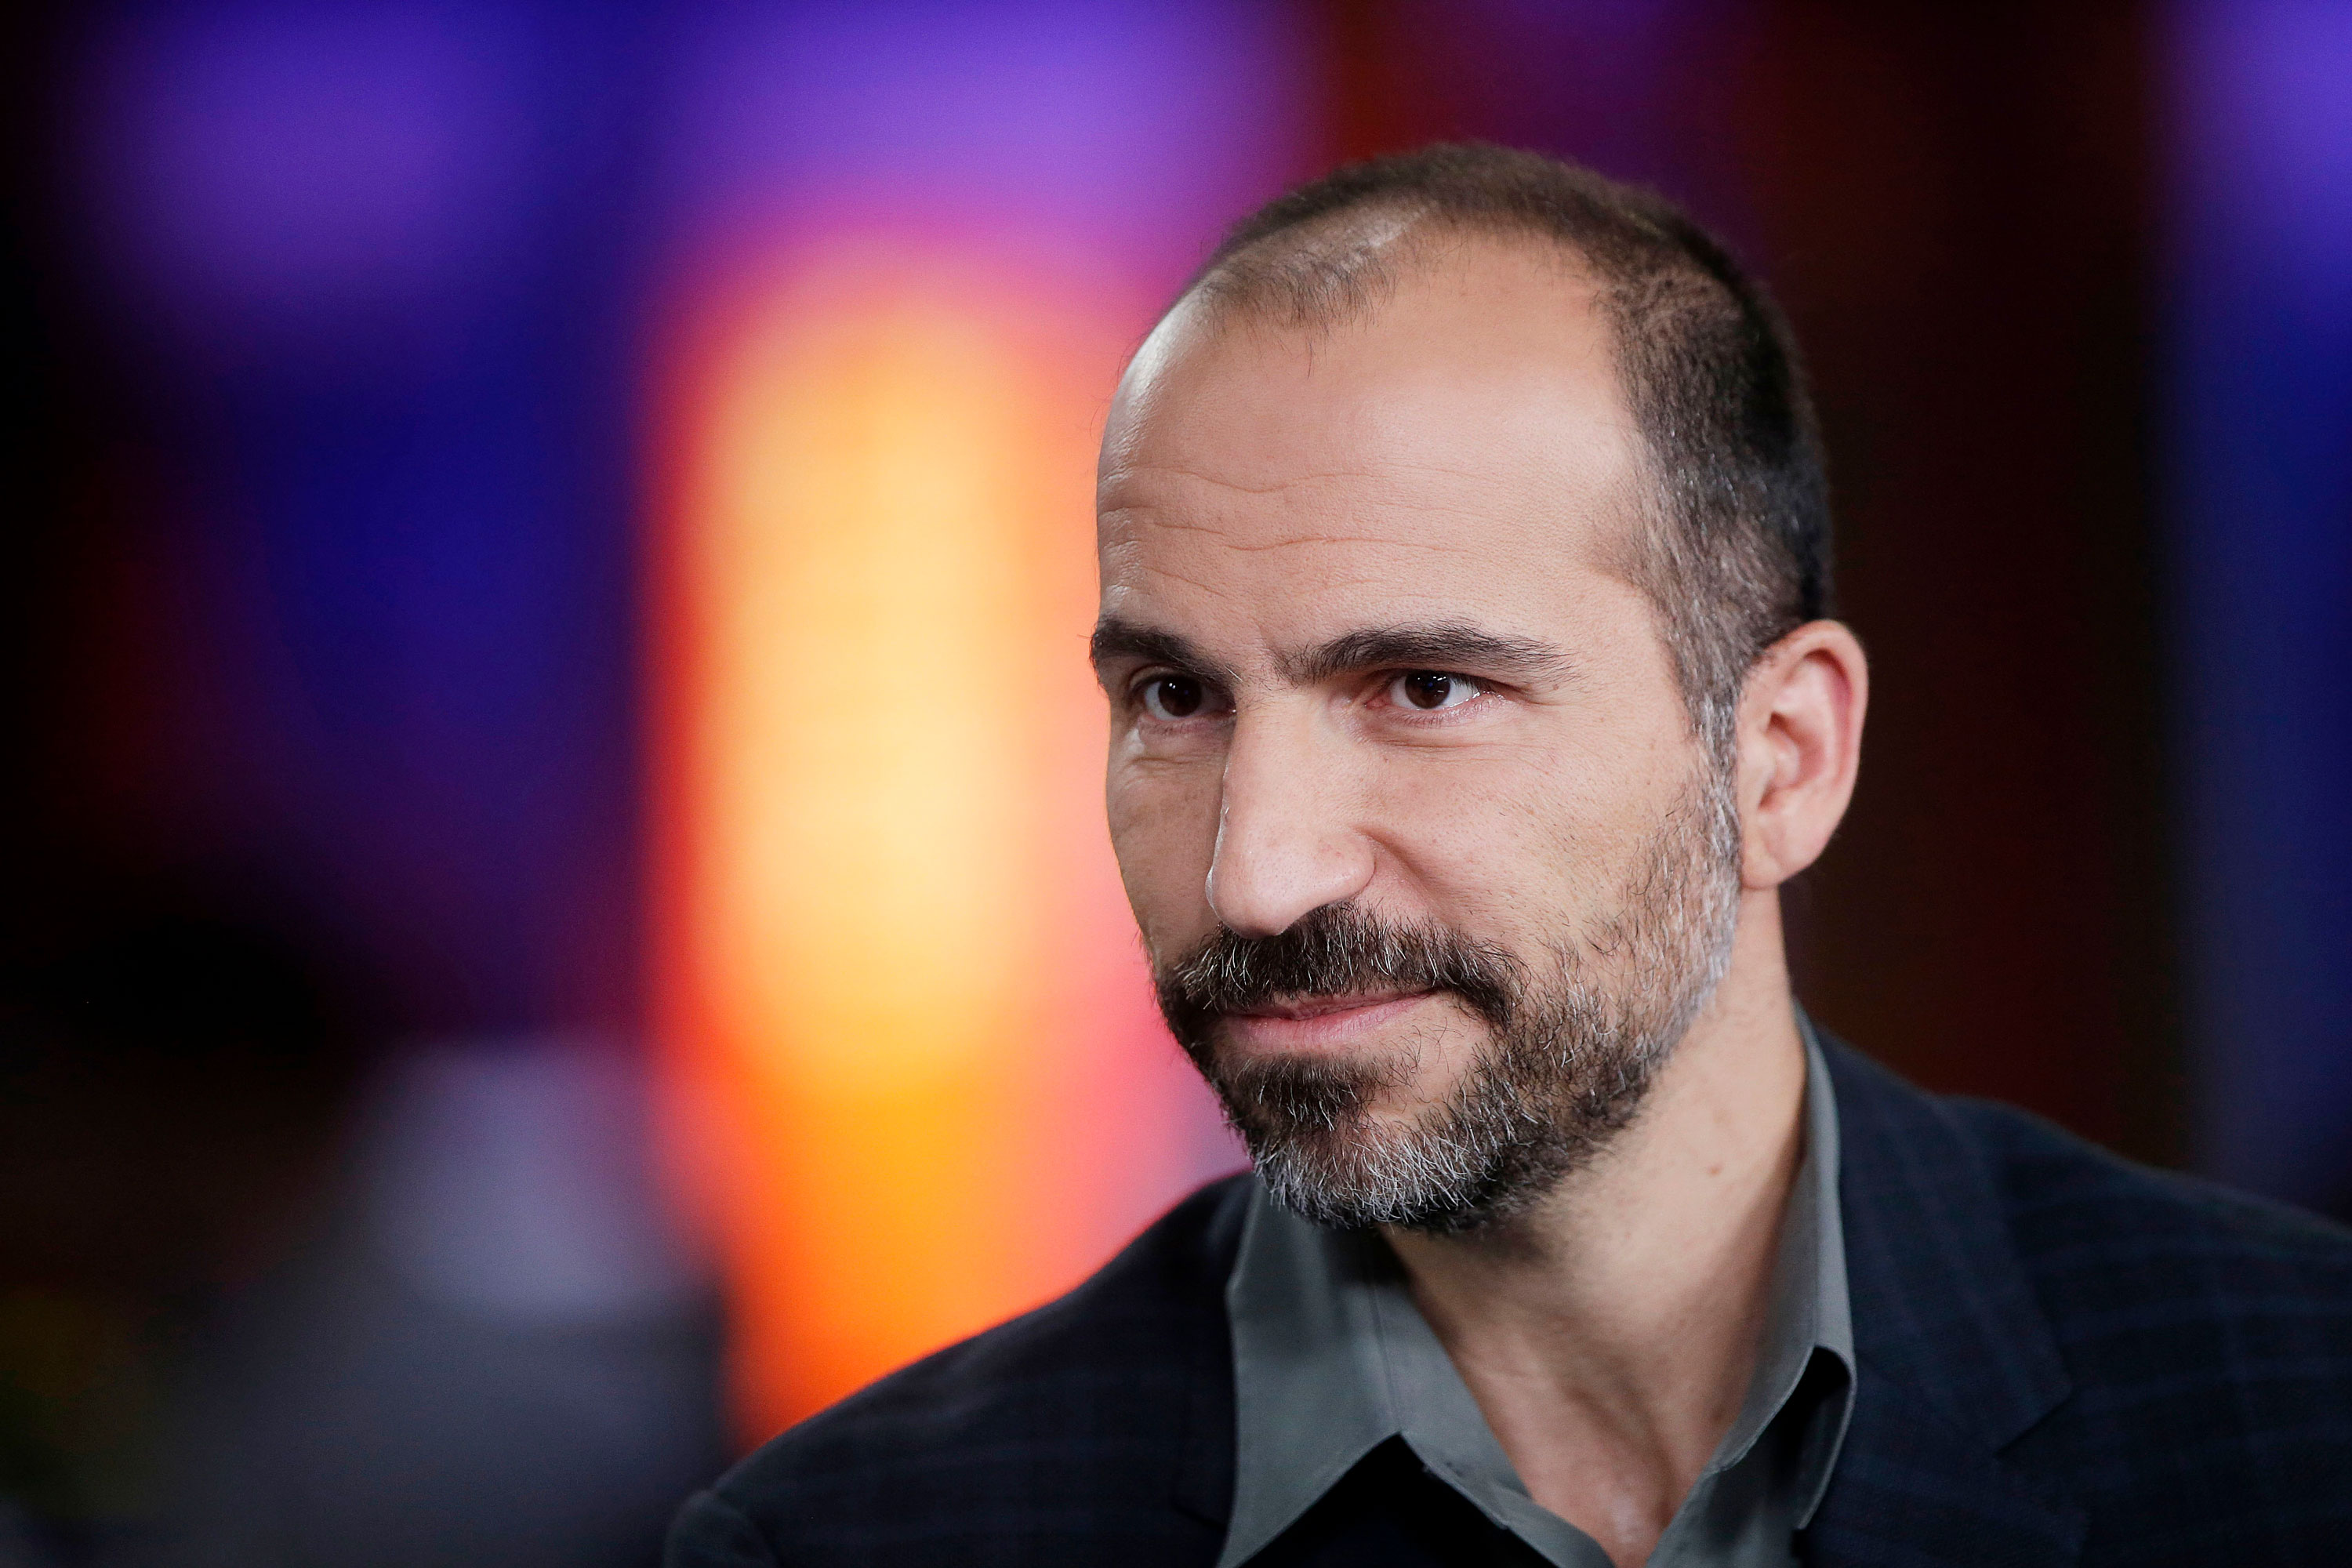 These are Uber's new 'cultural norms'